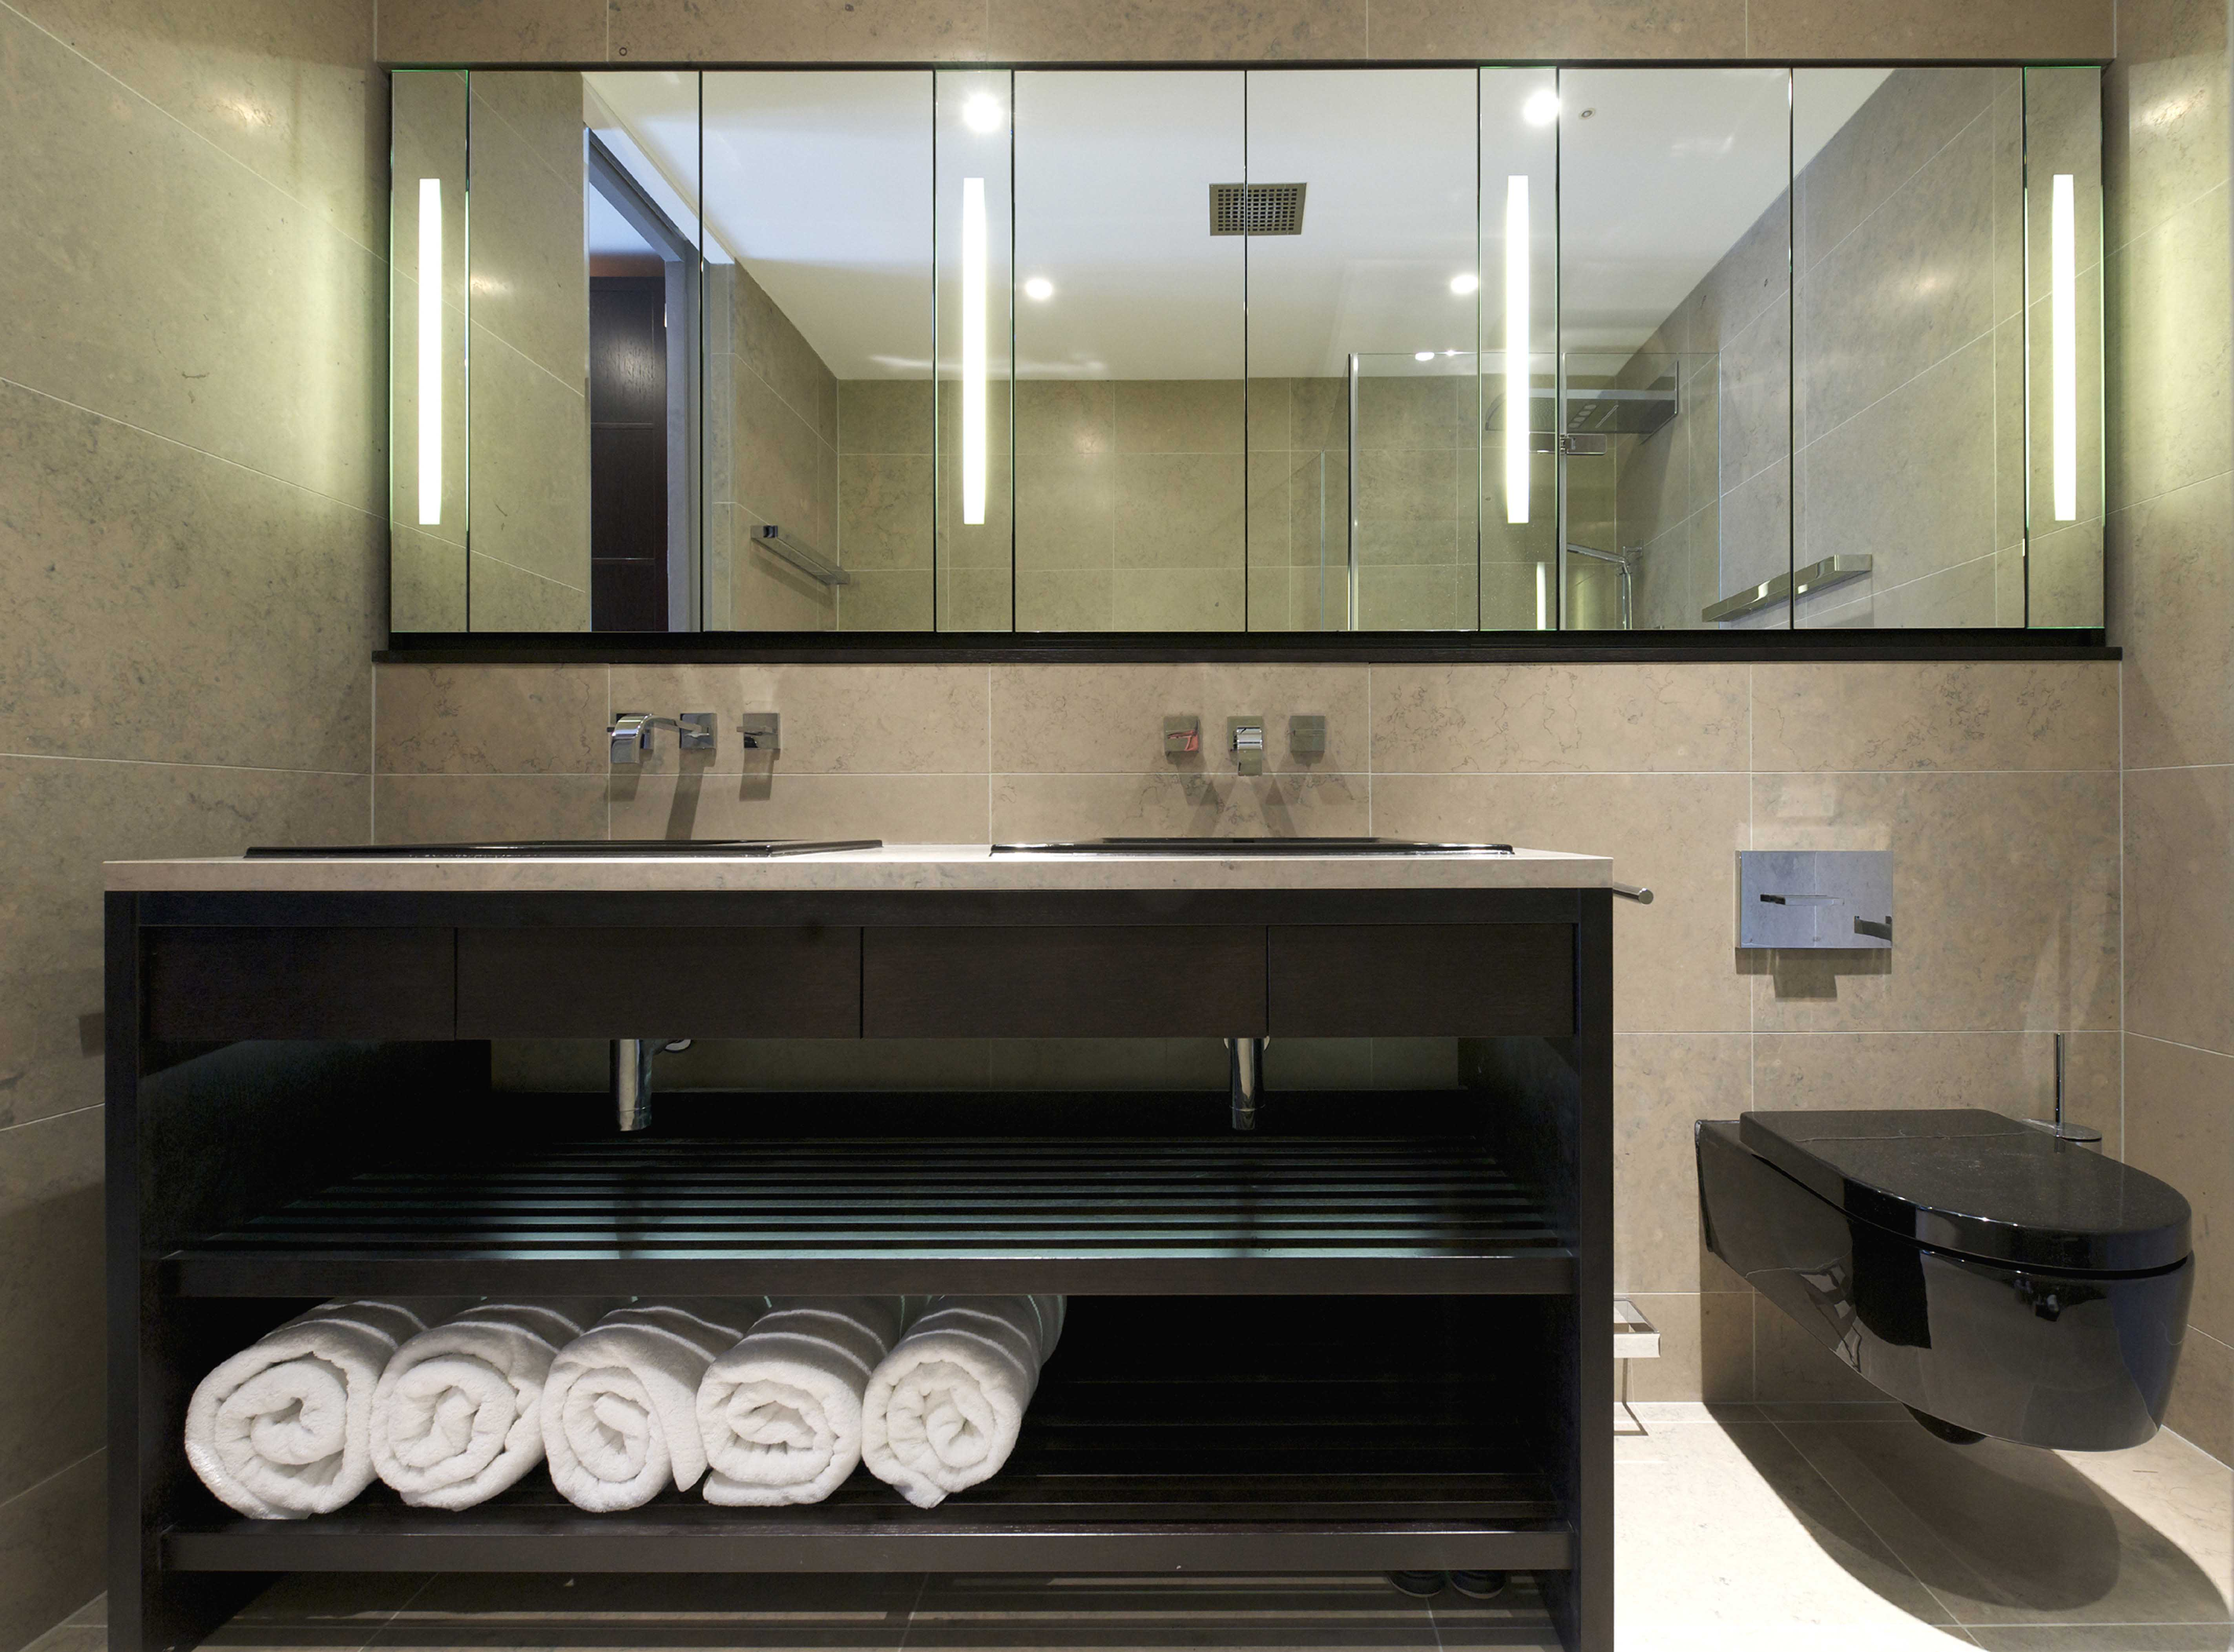 lit bathroom cabinets with sandblasted mirrored cabinets low res